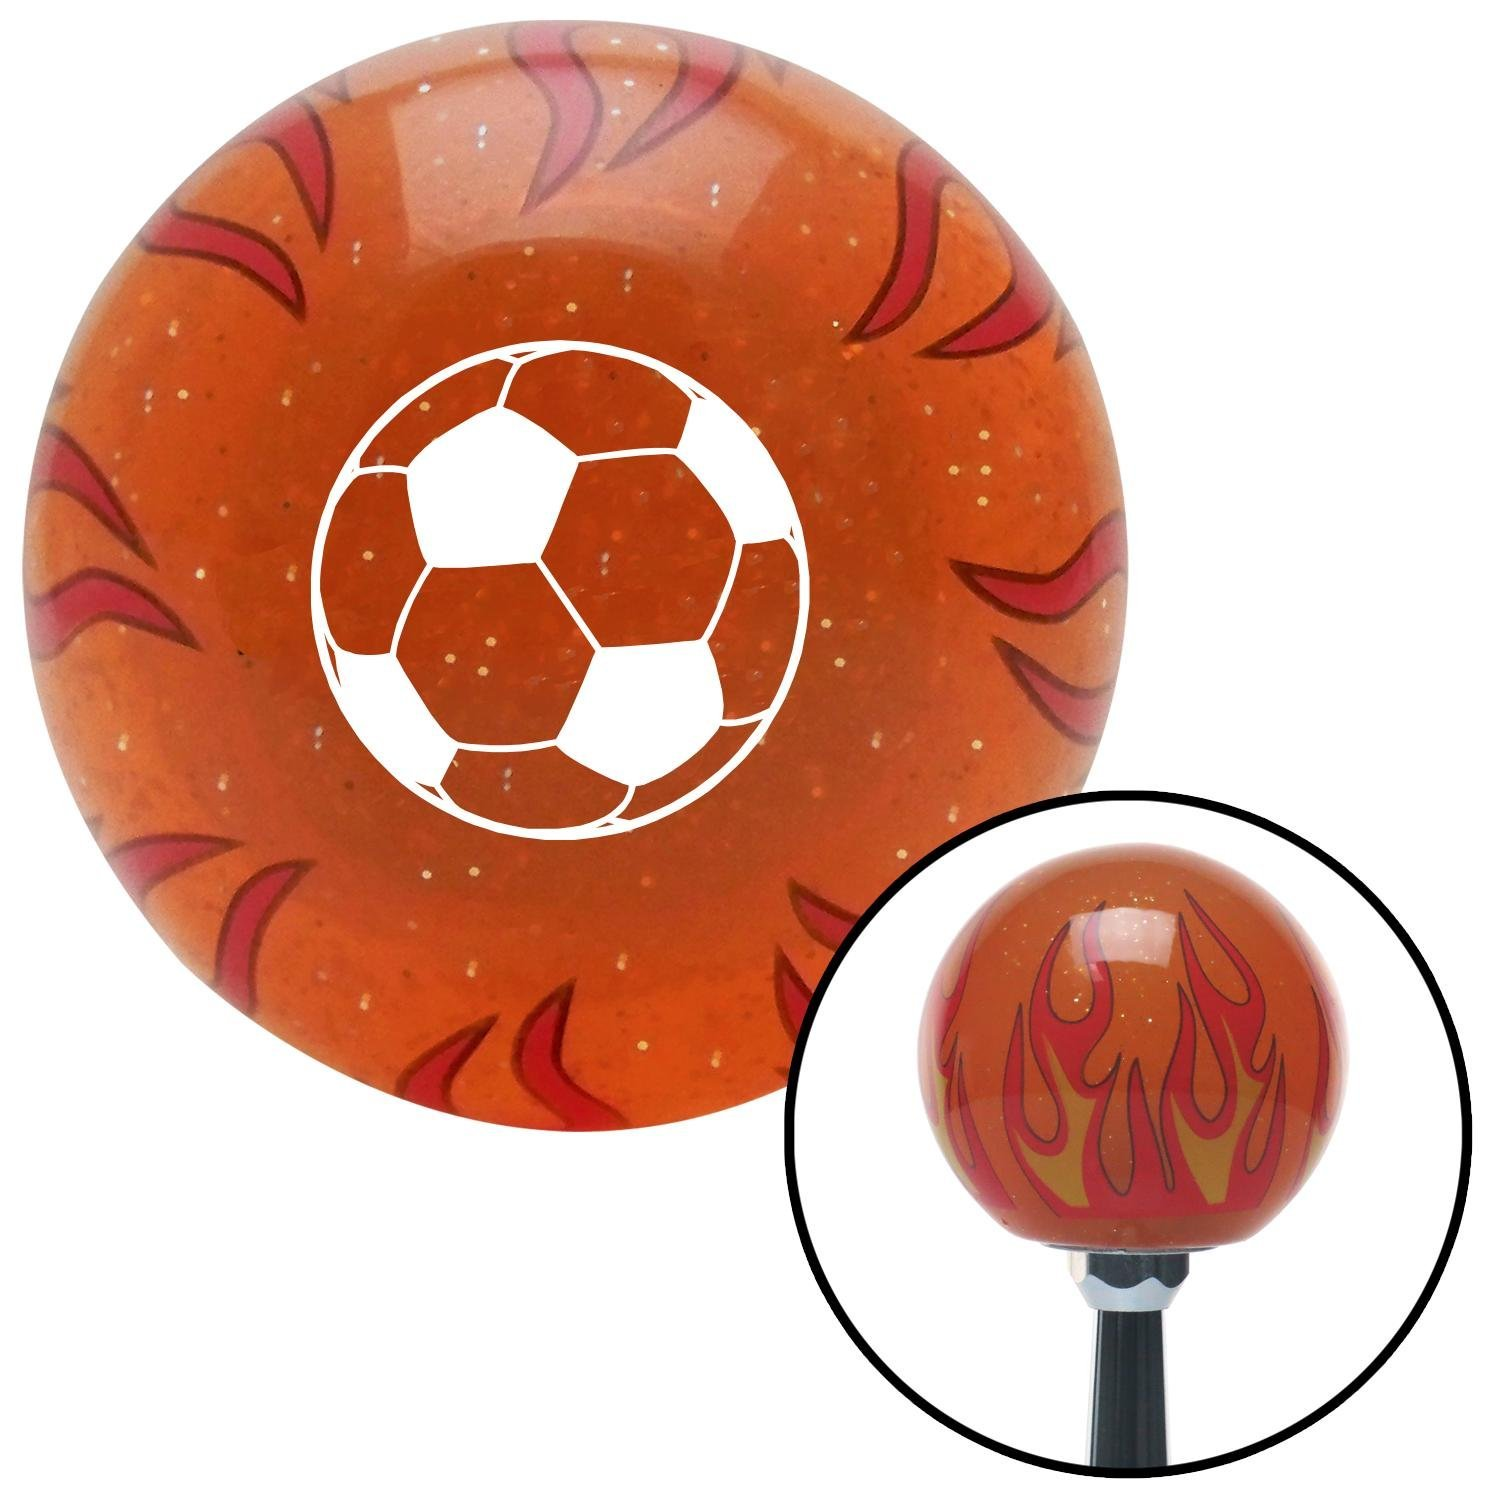 American Shifter 256050 Orange Flame Metal Flake Shift Knob with M16 x 1.5 Insert White Soccer Ball